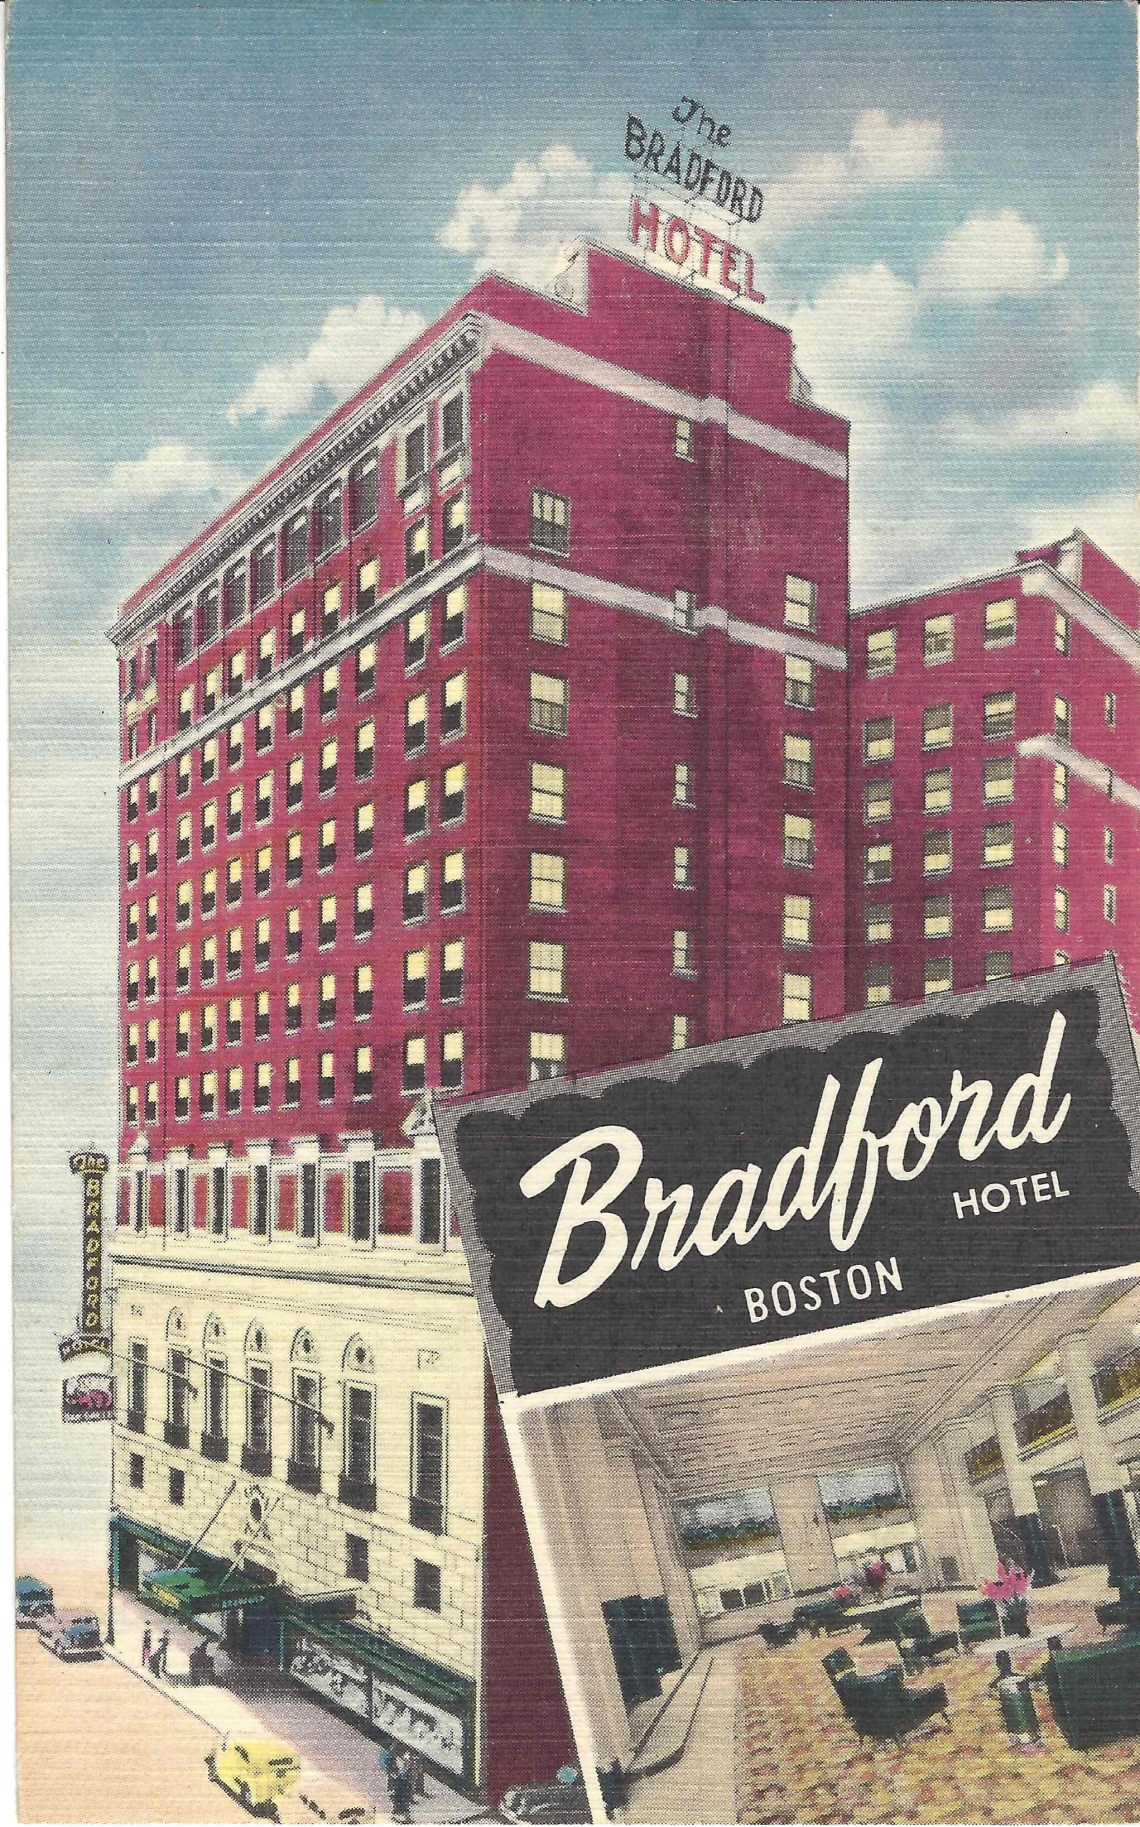 Bradford Hotel, Boston, Mass